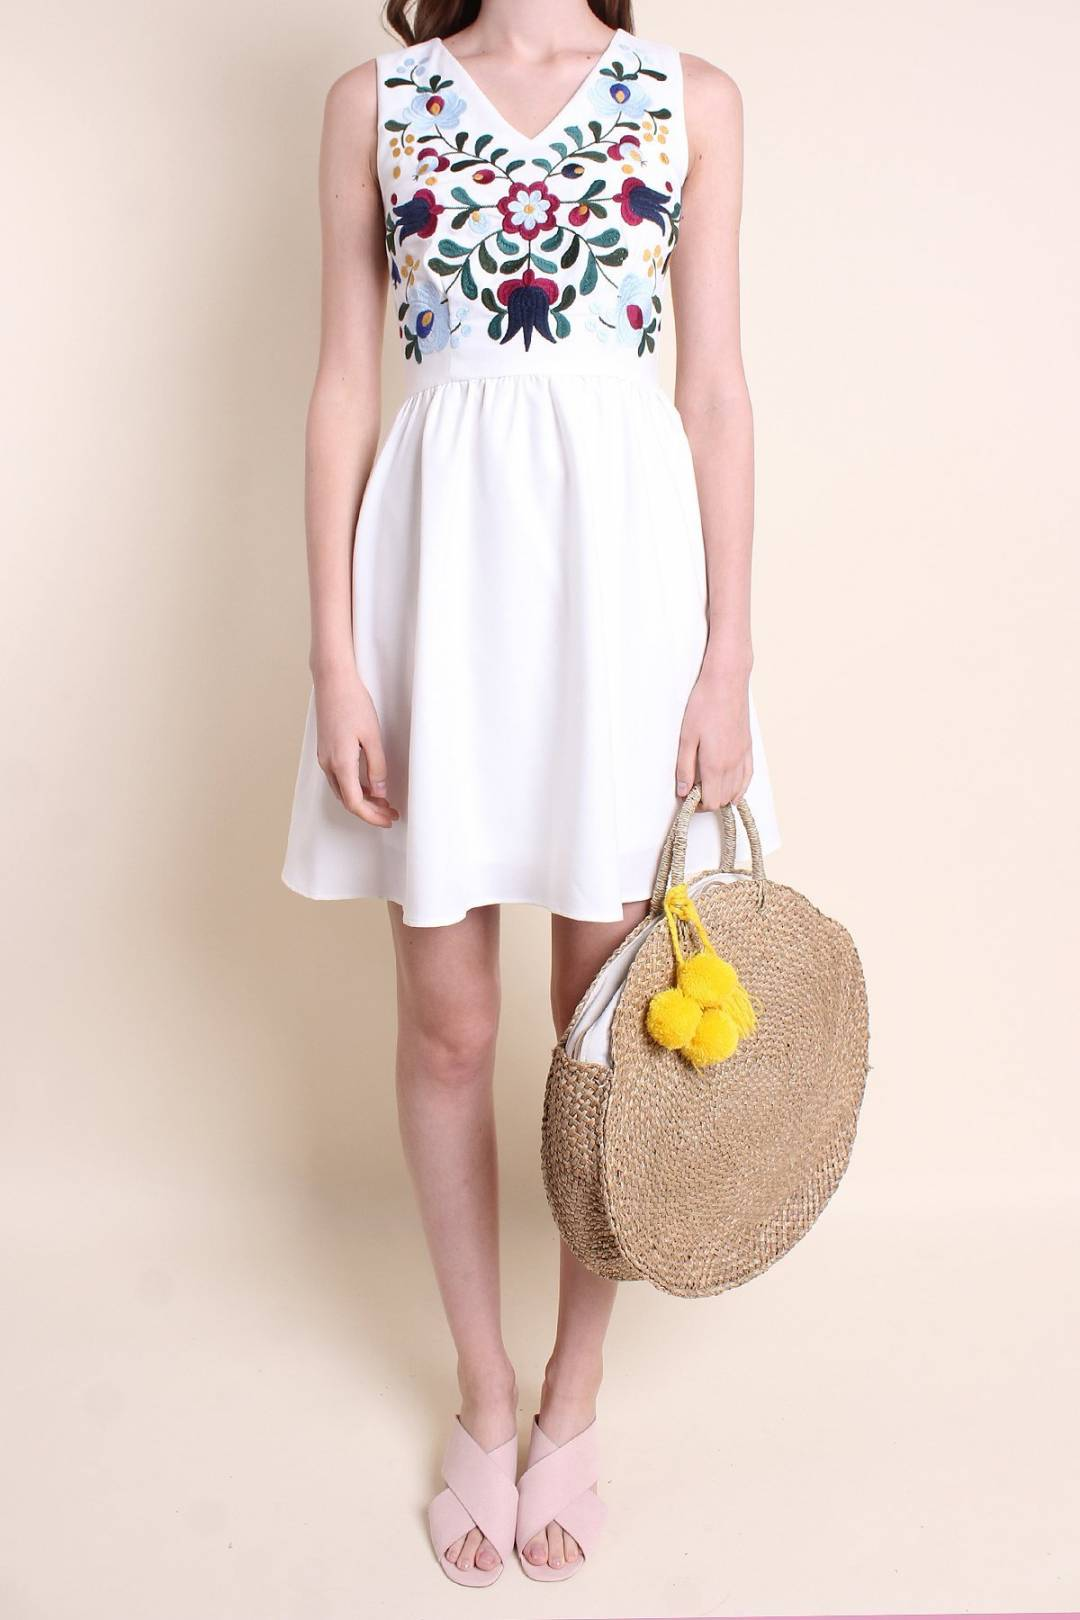 MADEYNM PARISA EMBROIDERY FIT N FLARE DRESS IN WHITE [XS/S/M/L/XL]